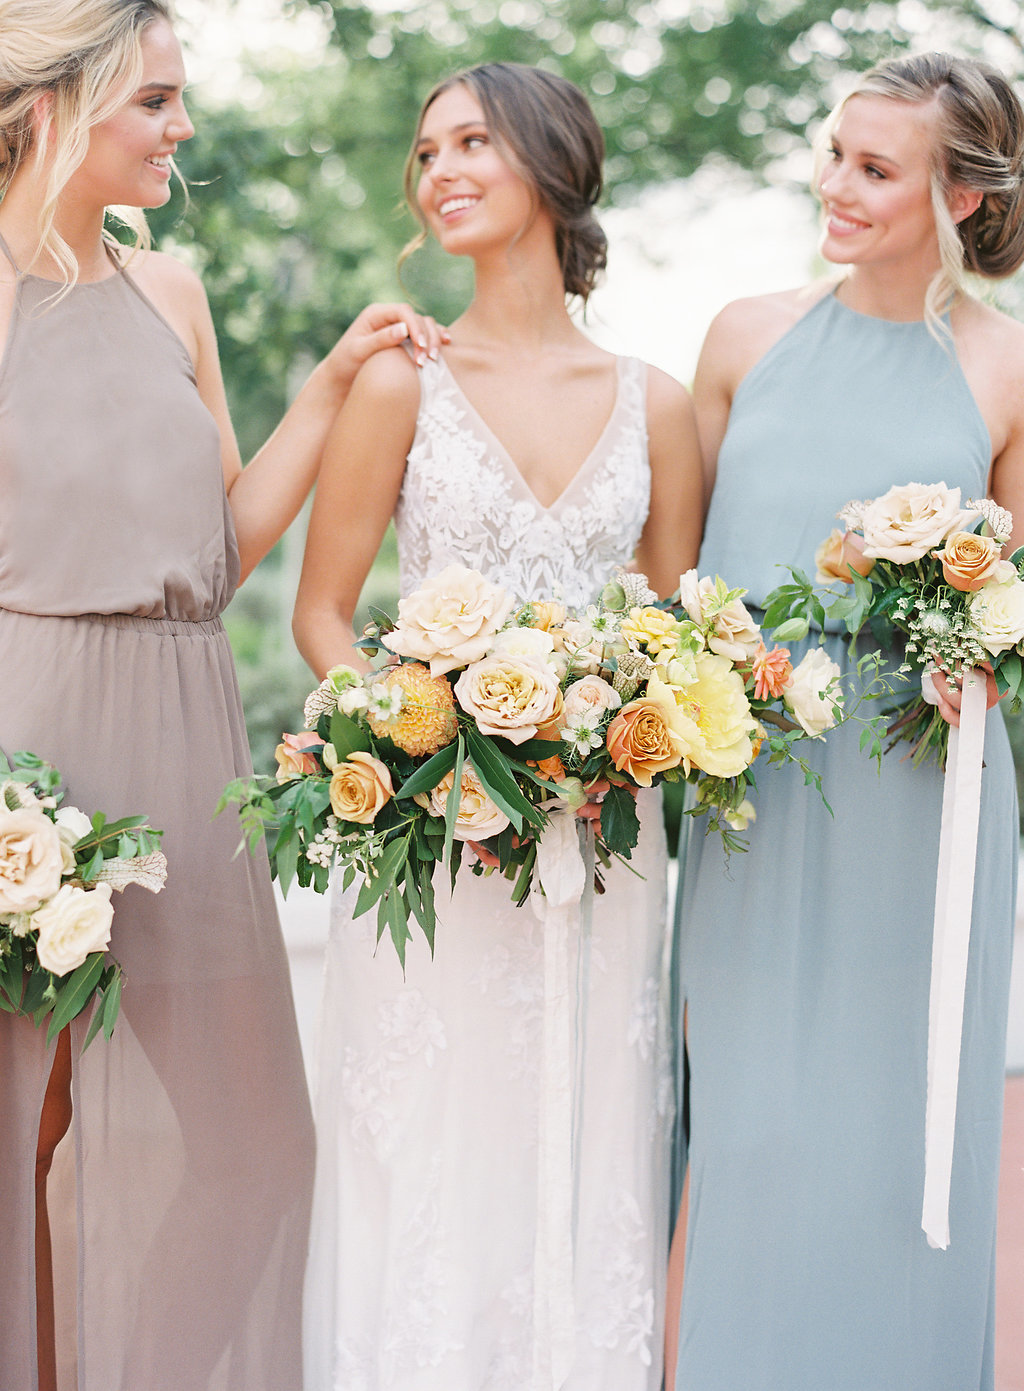 bride-and-bridesmaids-dresses